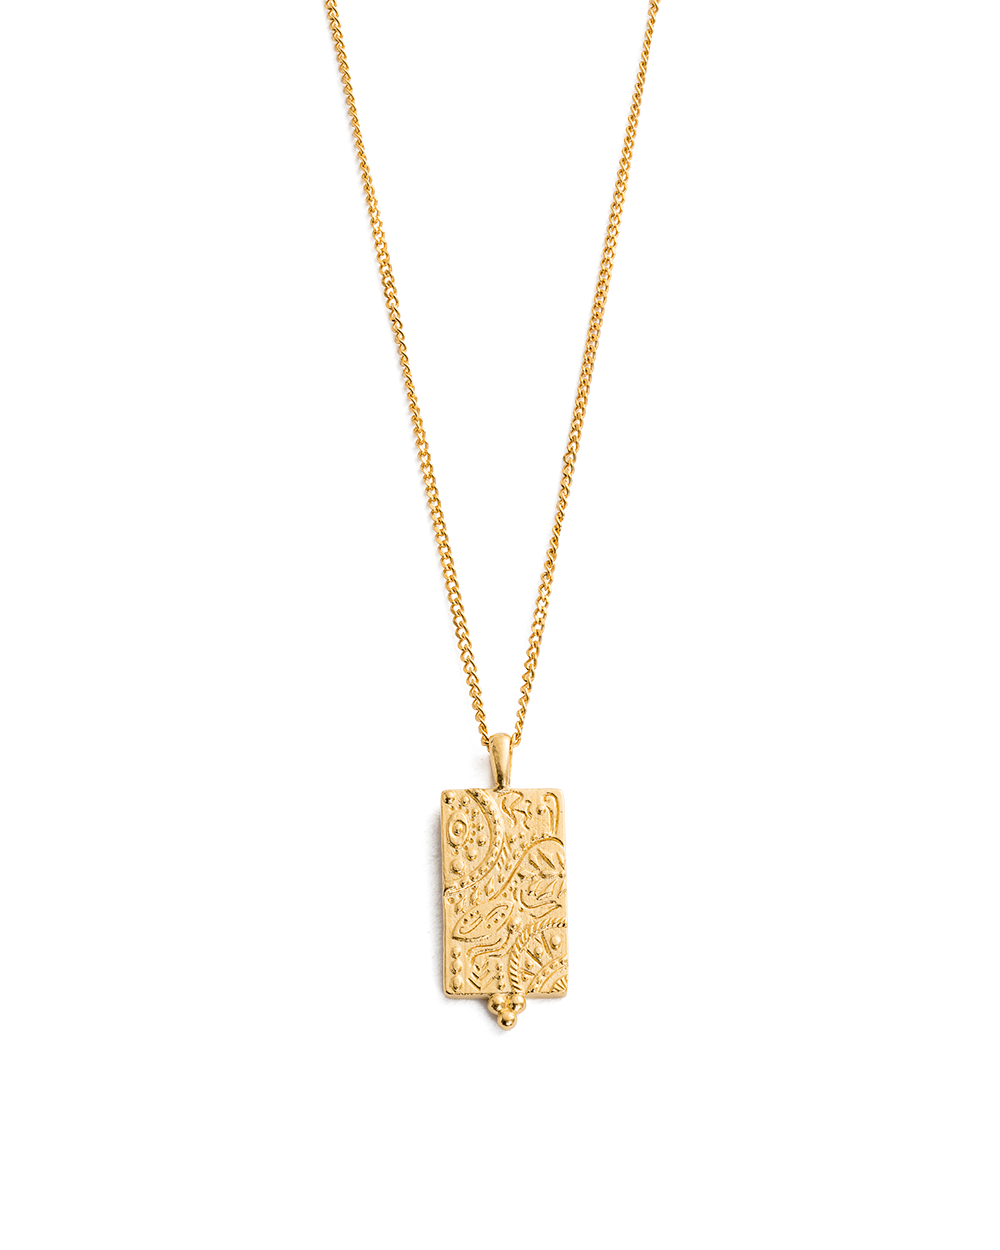 MARRAKECH-COIN-NECKLACE-18K-GOLD-VERMEIL-01